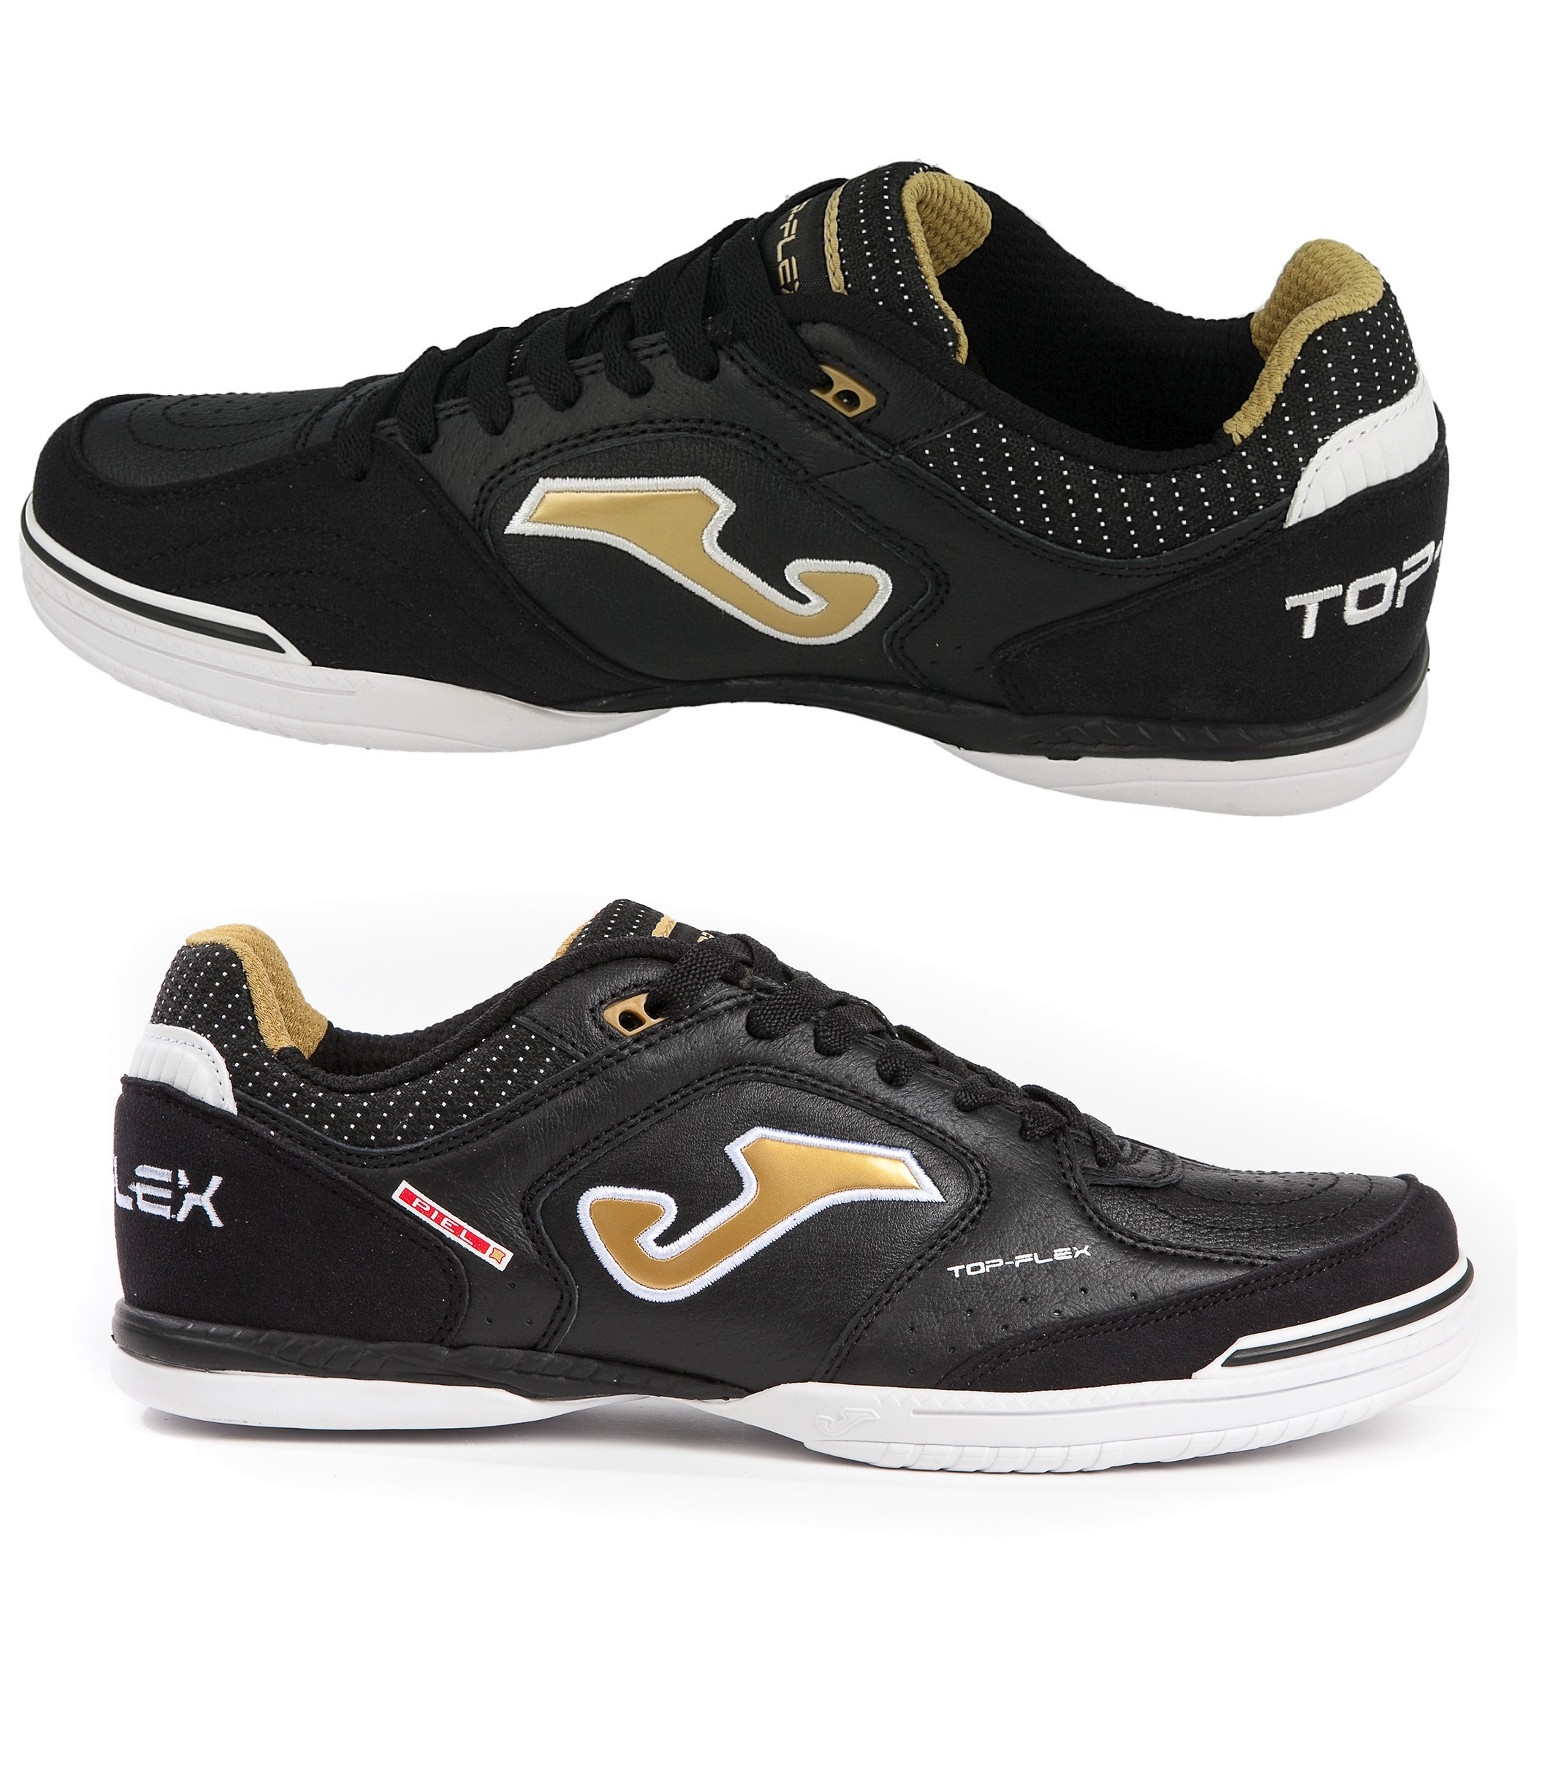 34355a6a6 Football shoes Joma Football shoes Top Flex 801 Noir gold Indoor